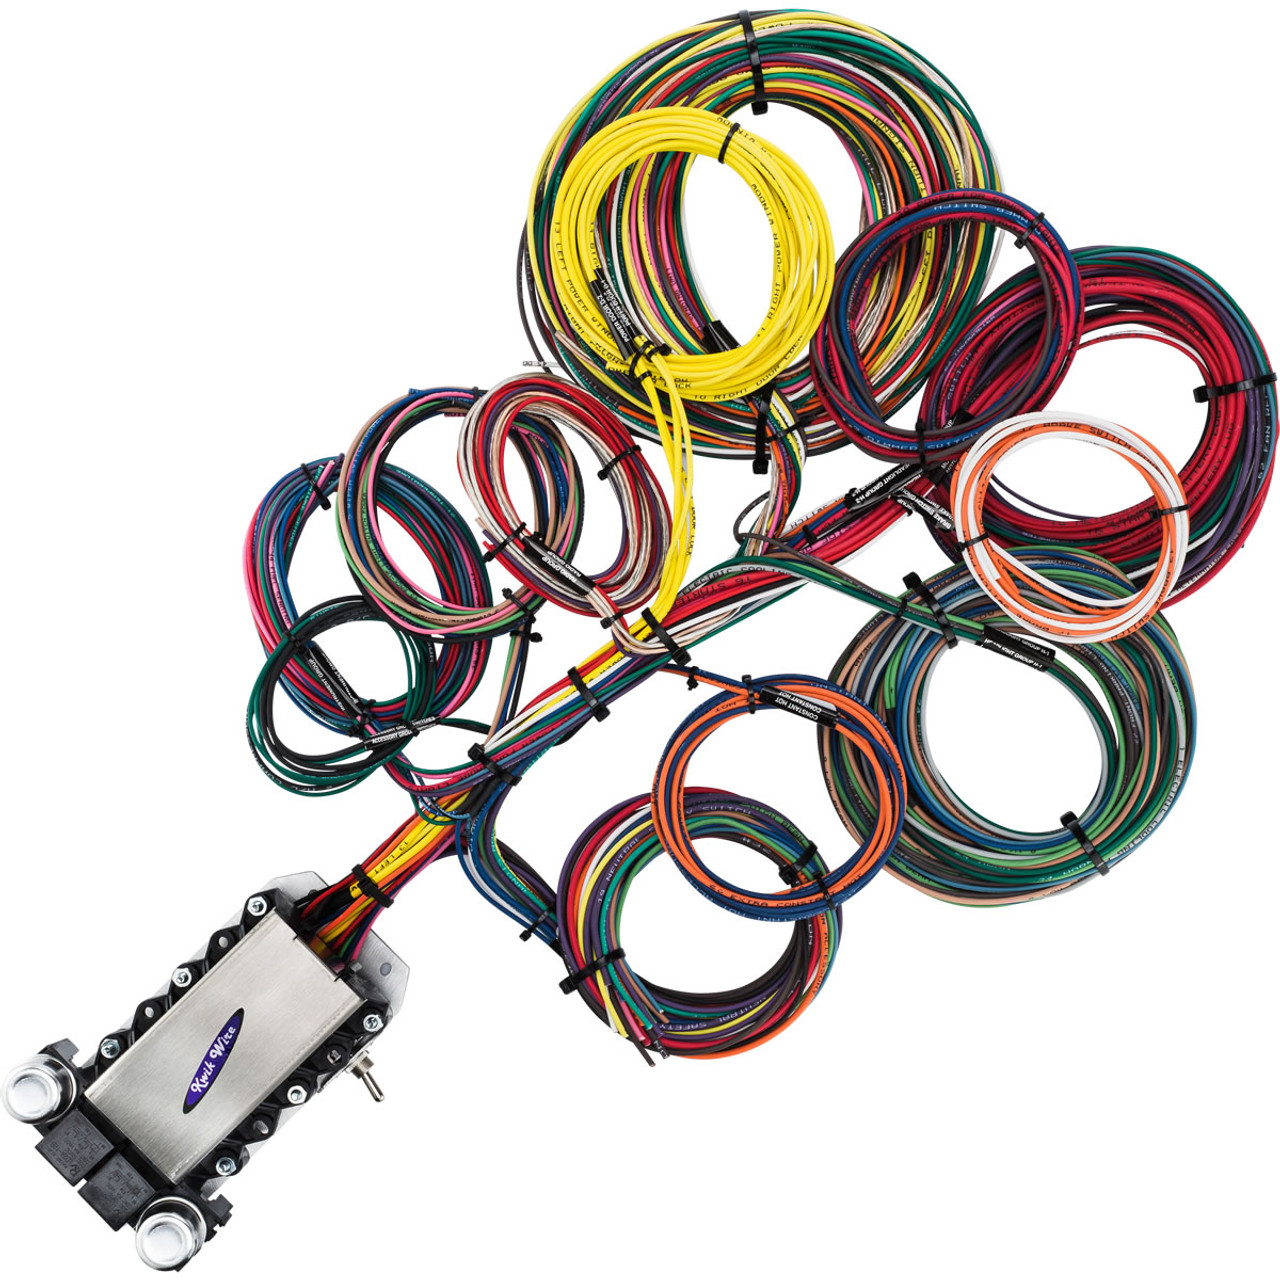 hight resolution of 22 circuit ford wire harness kwikwire com electrify your rideford wire harness 3